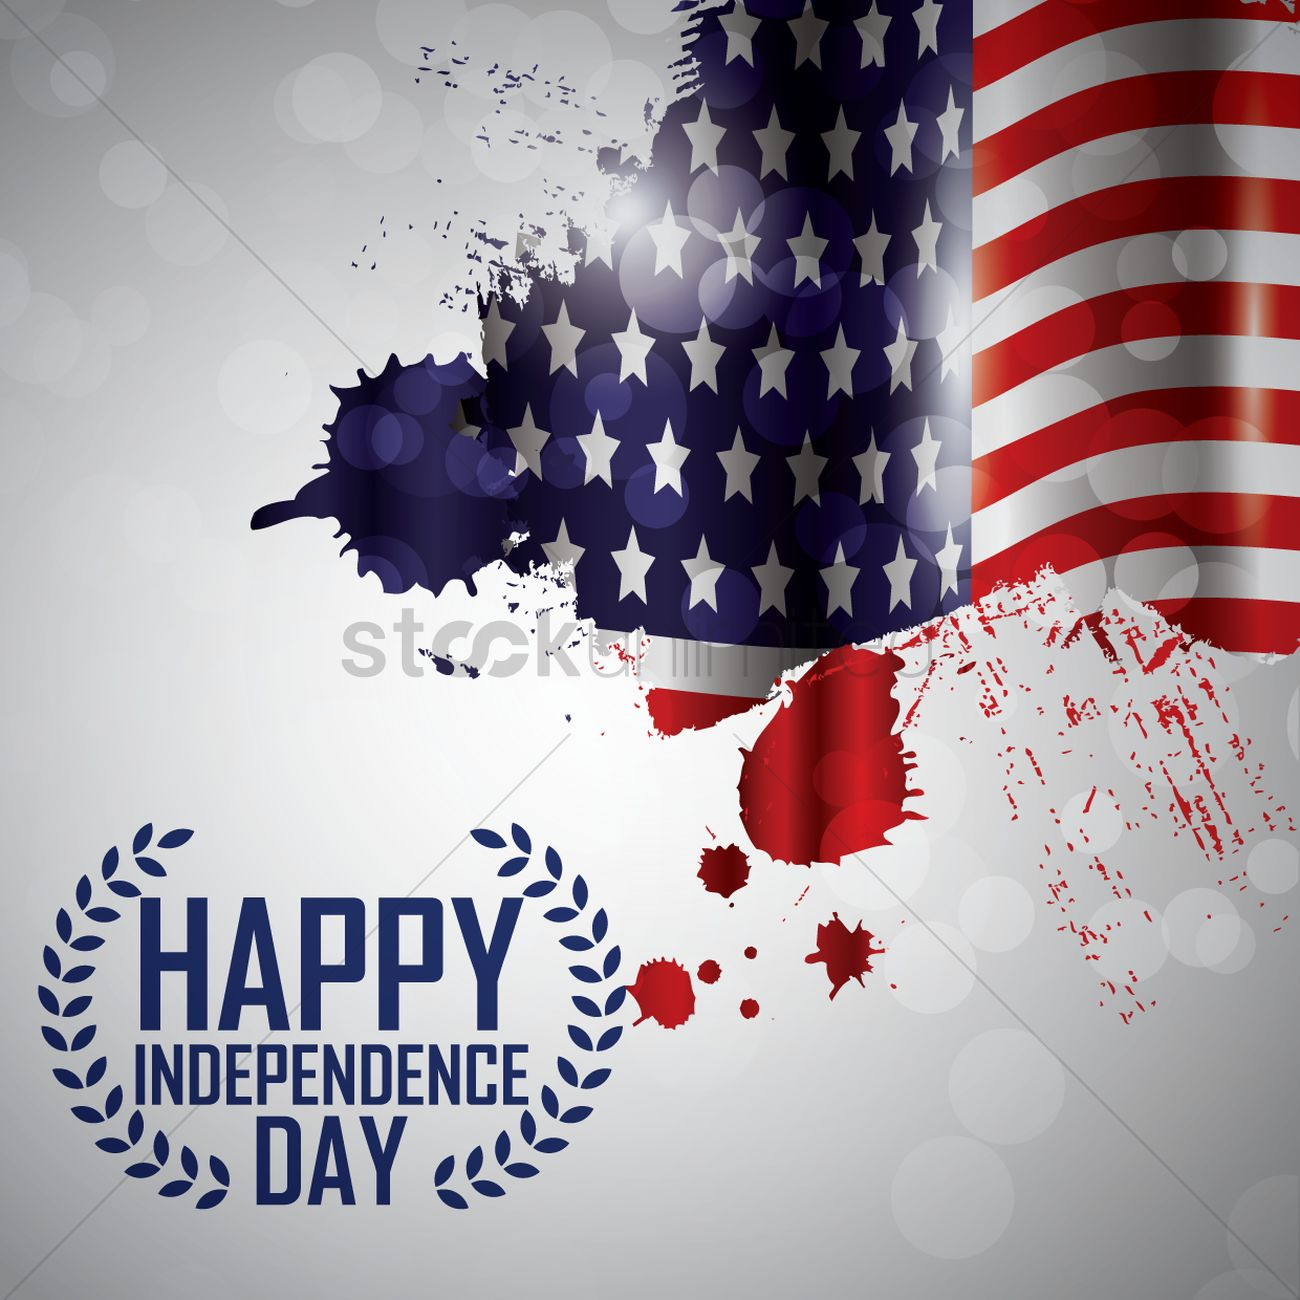 Us independence day Vector Image - 1557895 | StockUnlimited